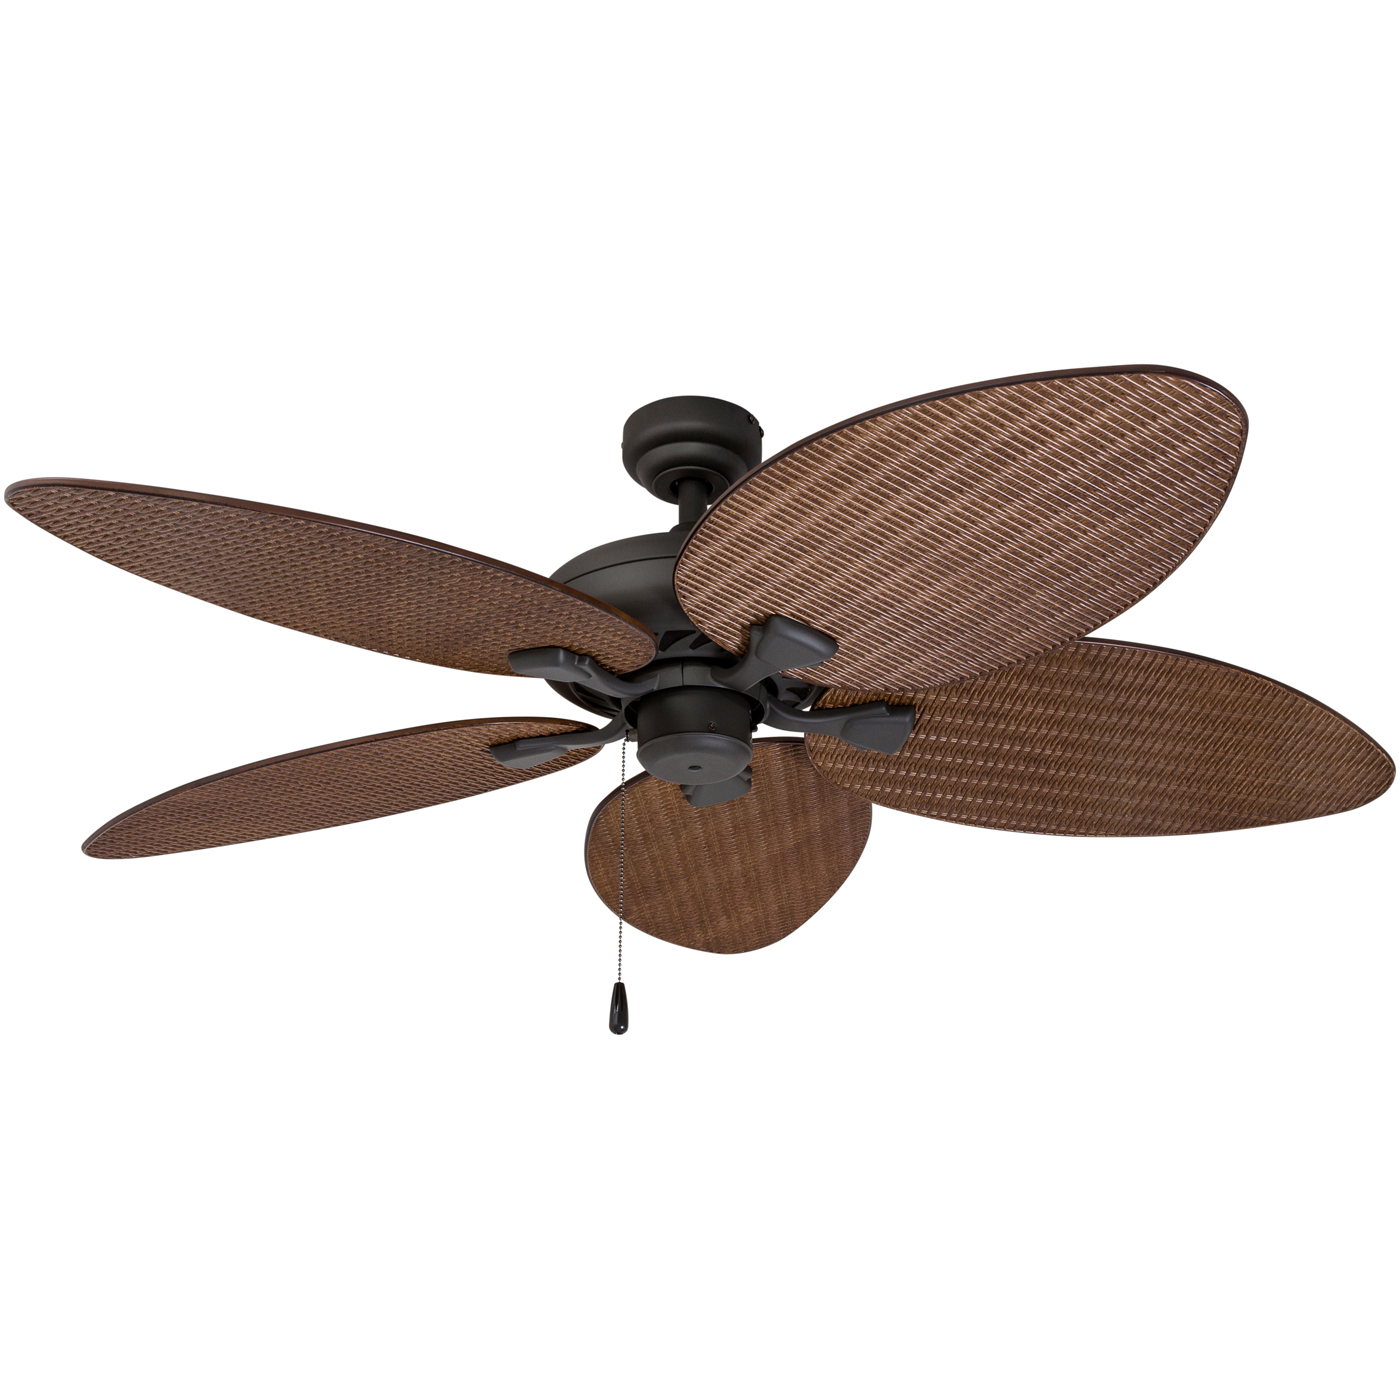 Prominence Home Ceiling Fan Palm Island Tropical, Palm Leaf